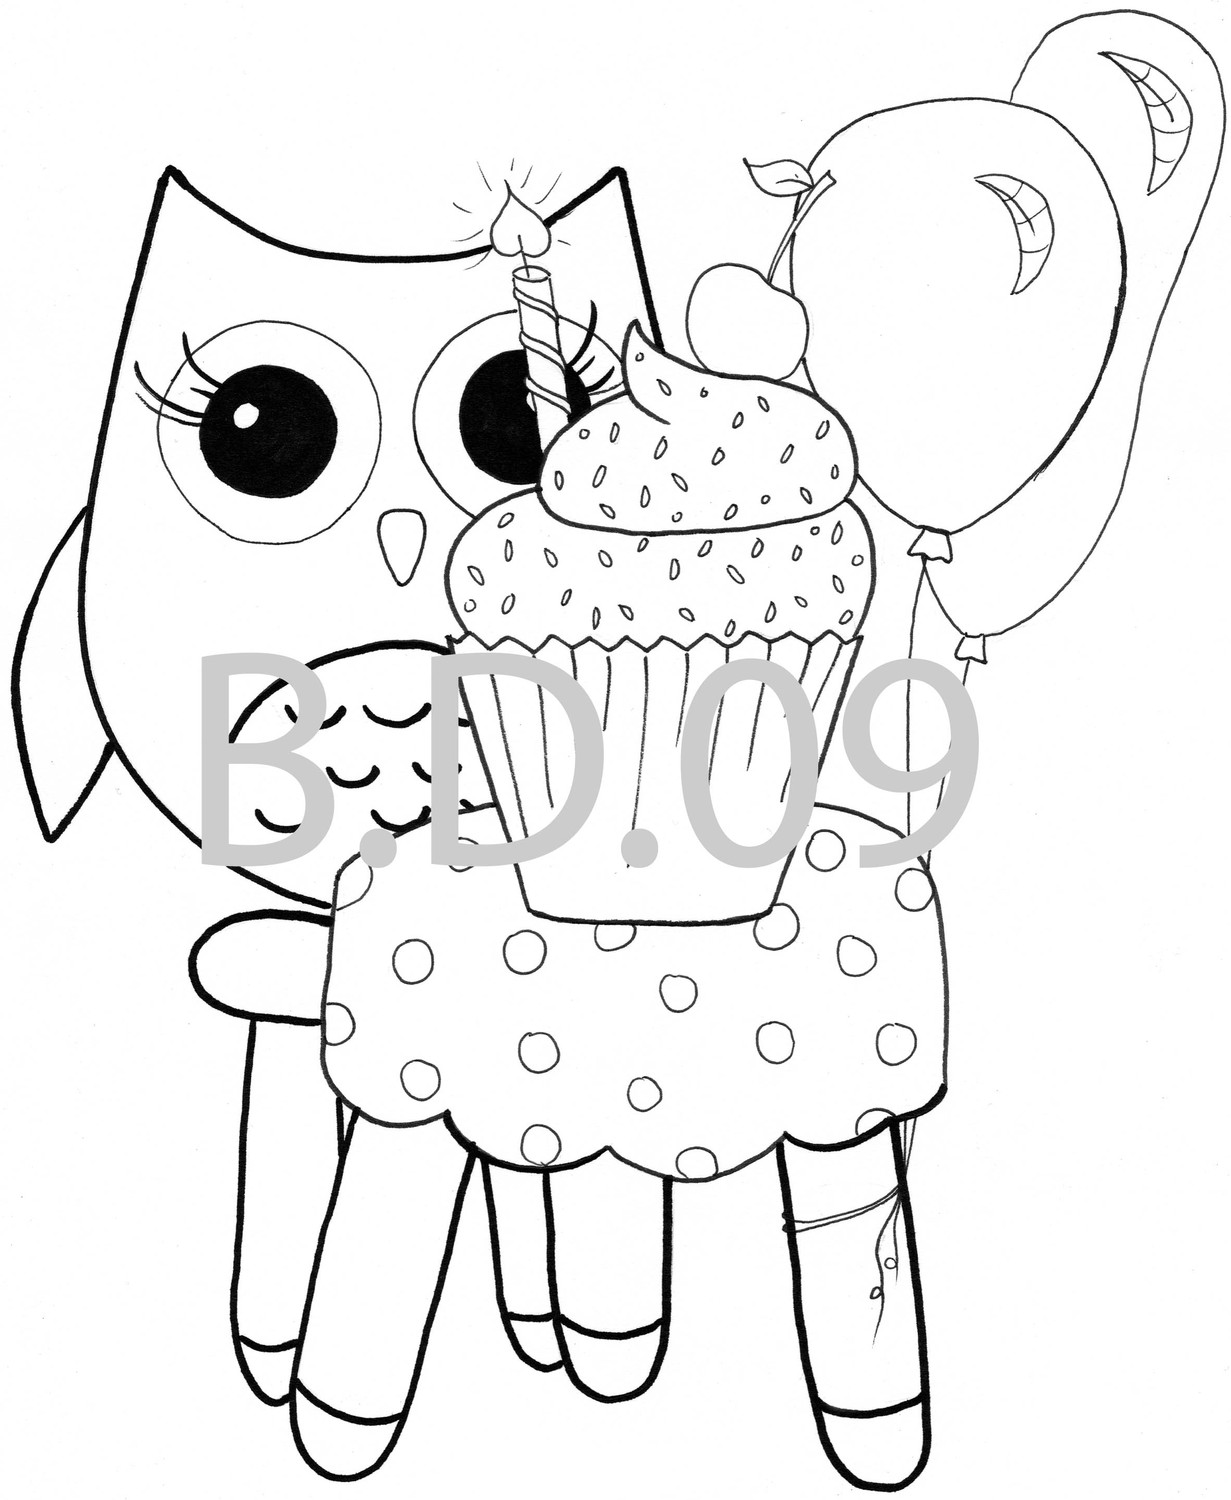 1231x1500 Of Cute Owls Coloring Page Free Download